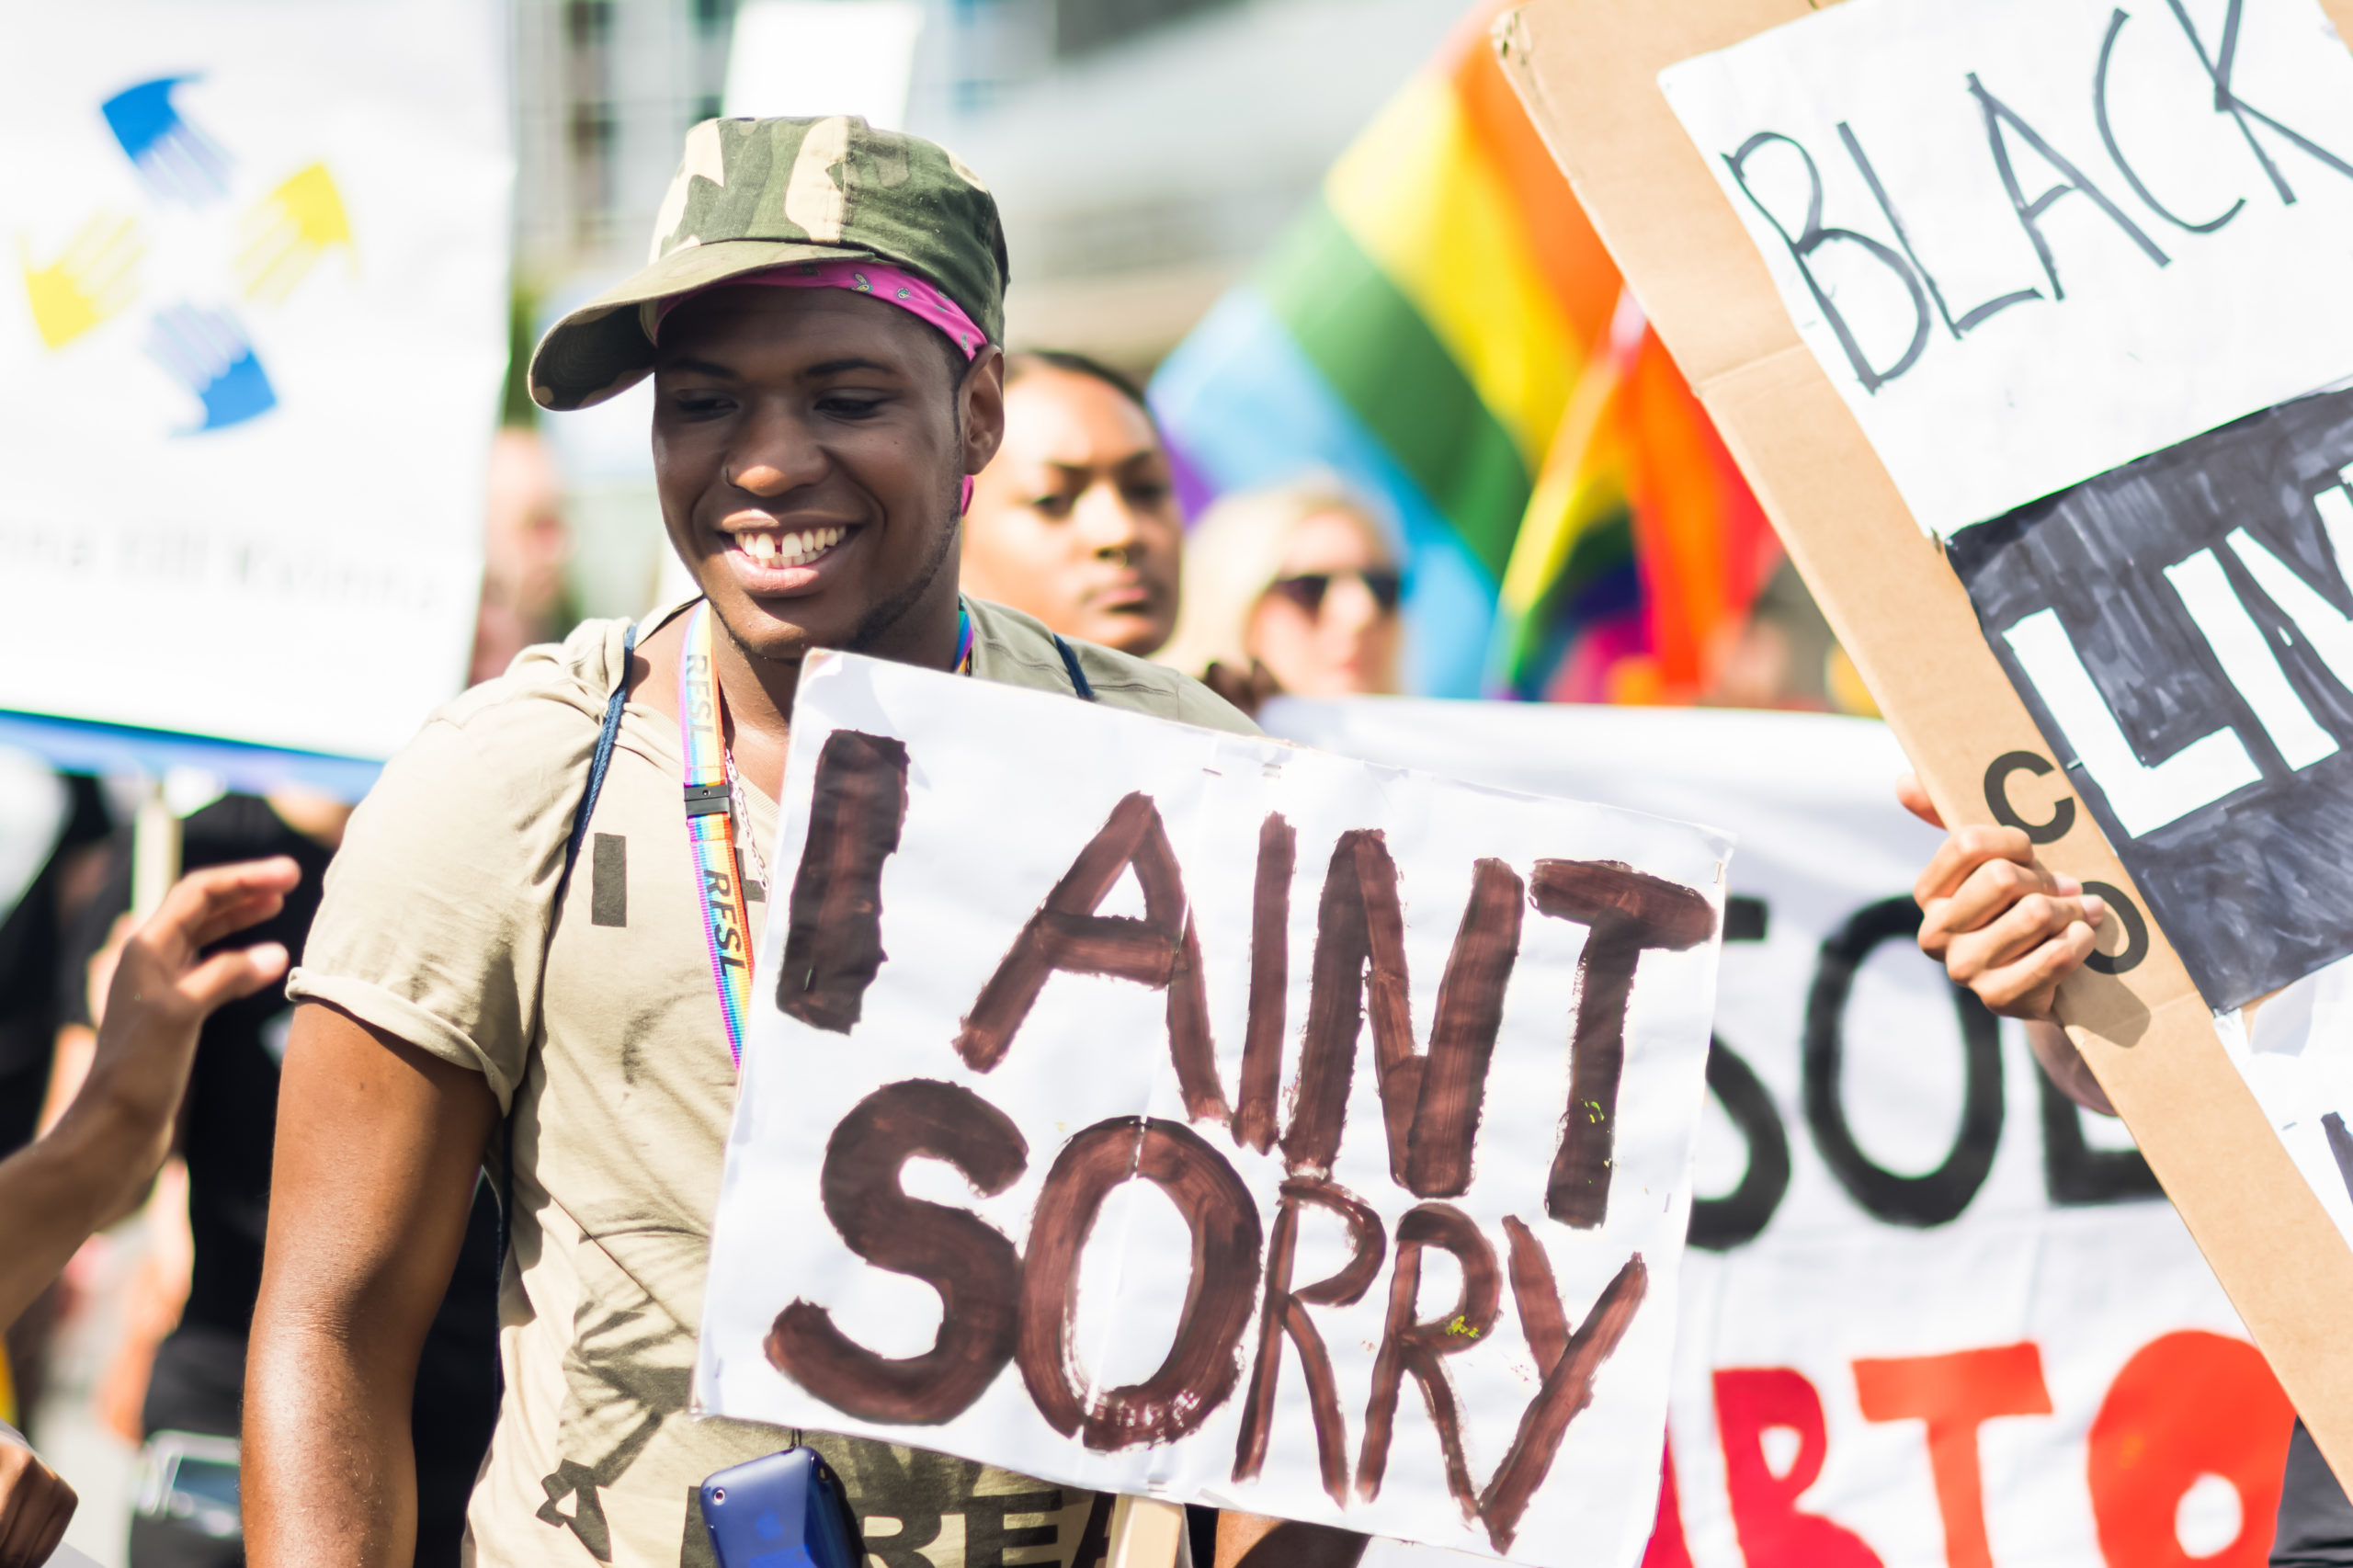 """STOCKHOLM, SWEDEN – JULY 30, 2016: Smiling Black man holding a banner that says """"I Ain't Sorry"""" during Stockholm Pride Parade on Hantverkargatan near the City Hall. A """"Black Lives Matter"""" sign and a rainbow pride flag are also visible in the crowd."""